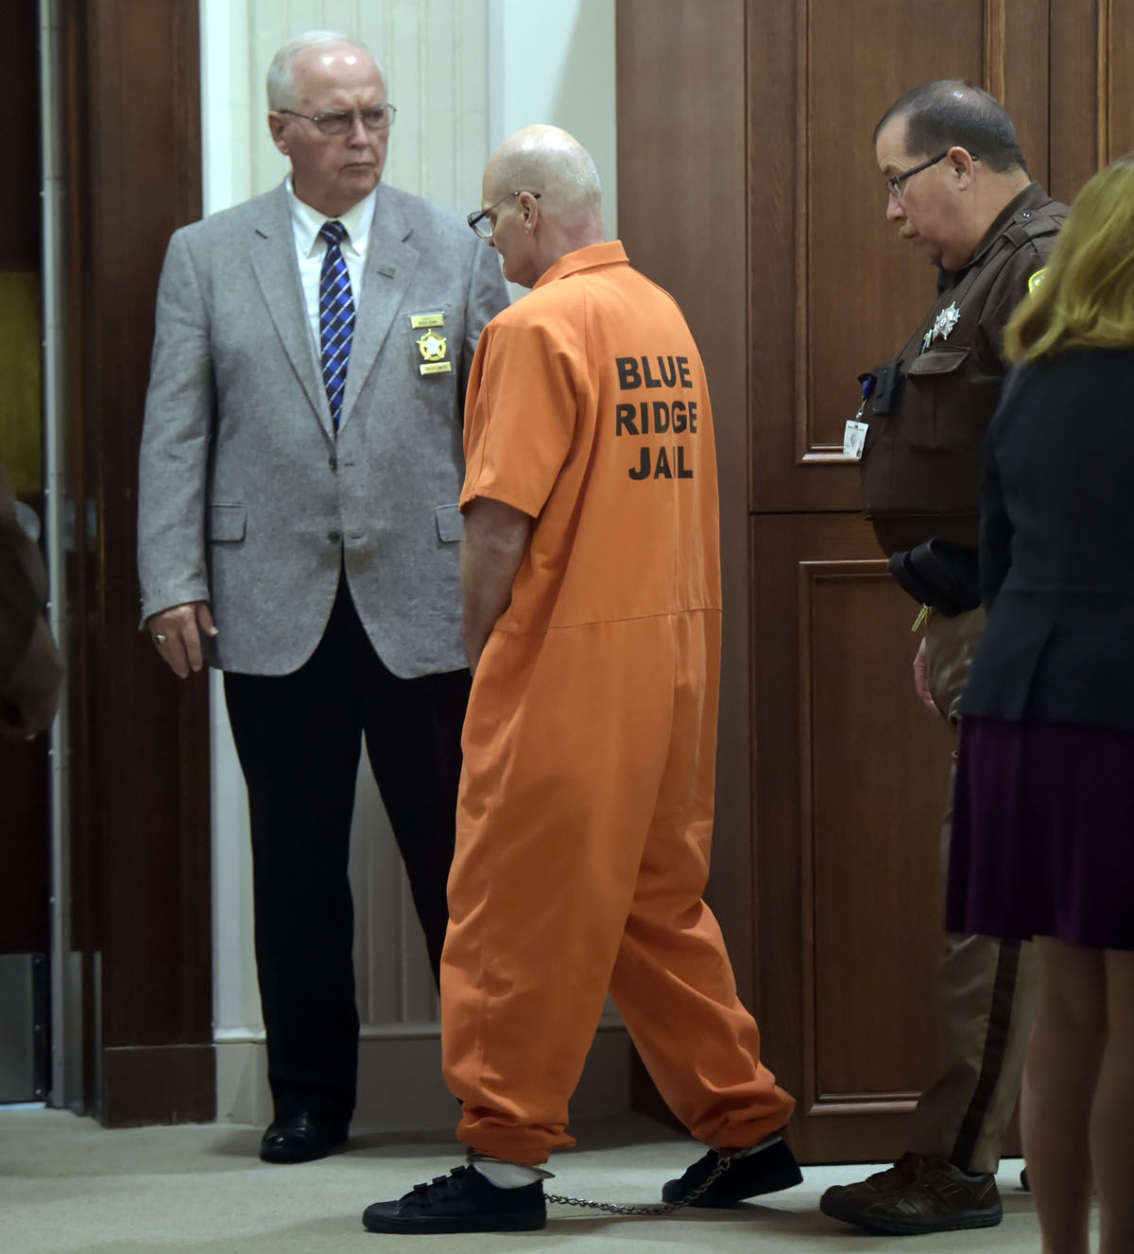 Lloyd Lee Welch Jr., center, is led out of court after a plea agreement hearing for the killings of Sheila and Katherine Lyon in 1975, in Bedford County Circuit Court in Bedford, Va., Tuesday, Sept. 12, 2017. Welch plead guilty to two counts of first degree murder and was sentenced to two consecutive 48-year terms. (Lathan Goumas /News & Daily Advance via AP, Pool)